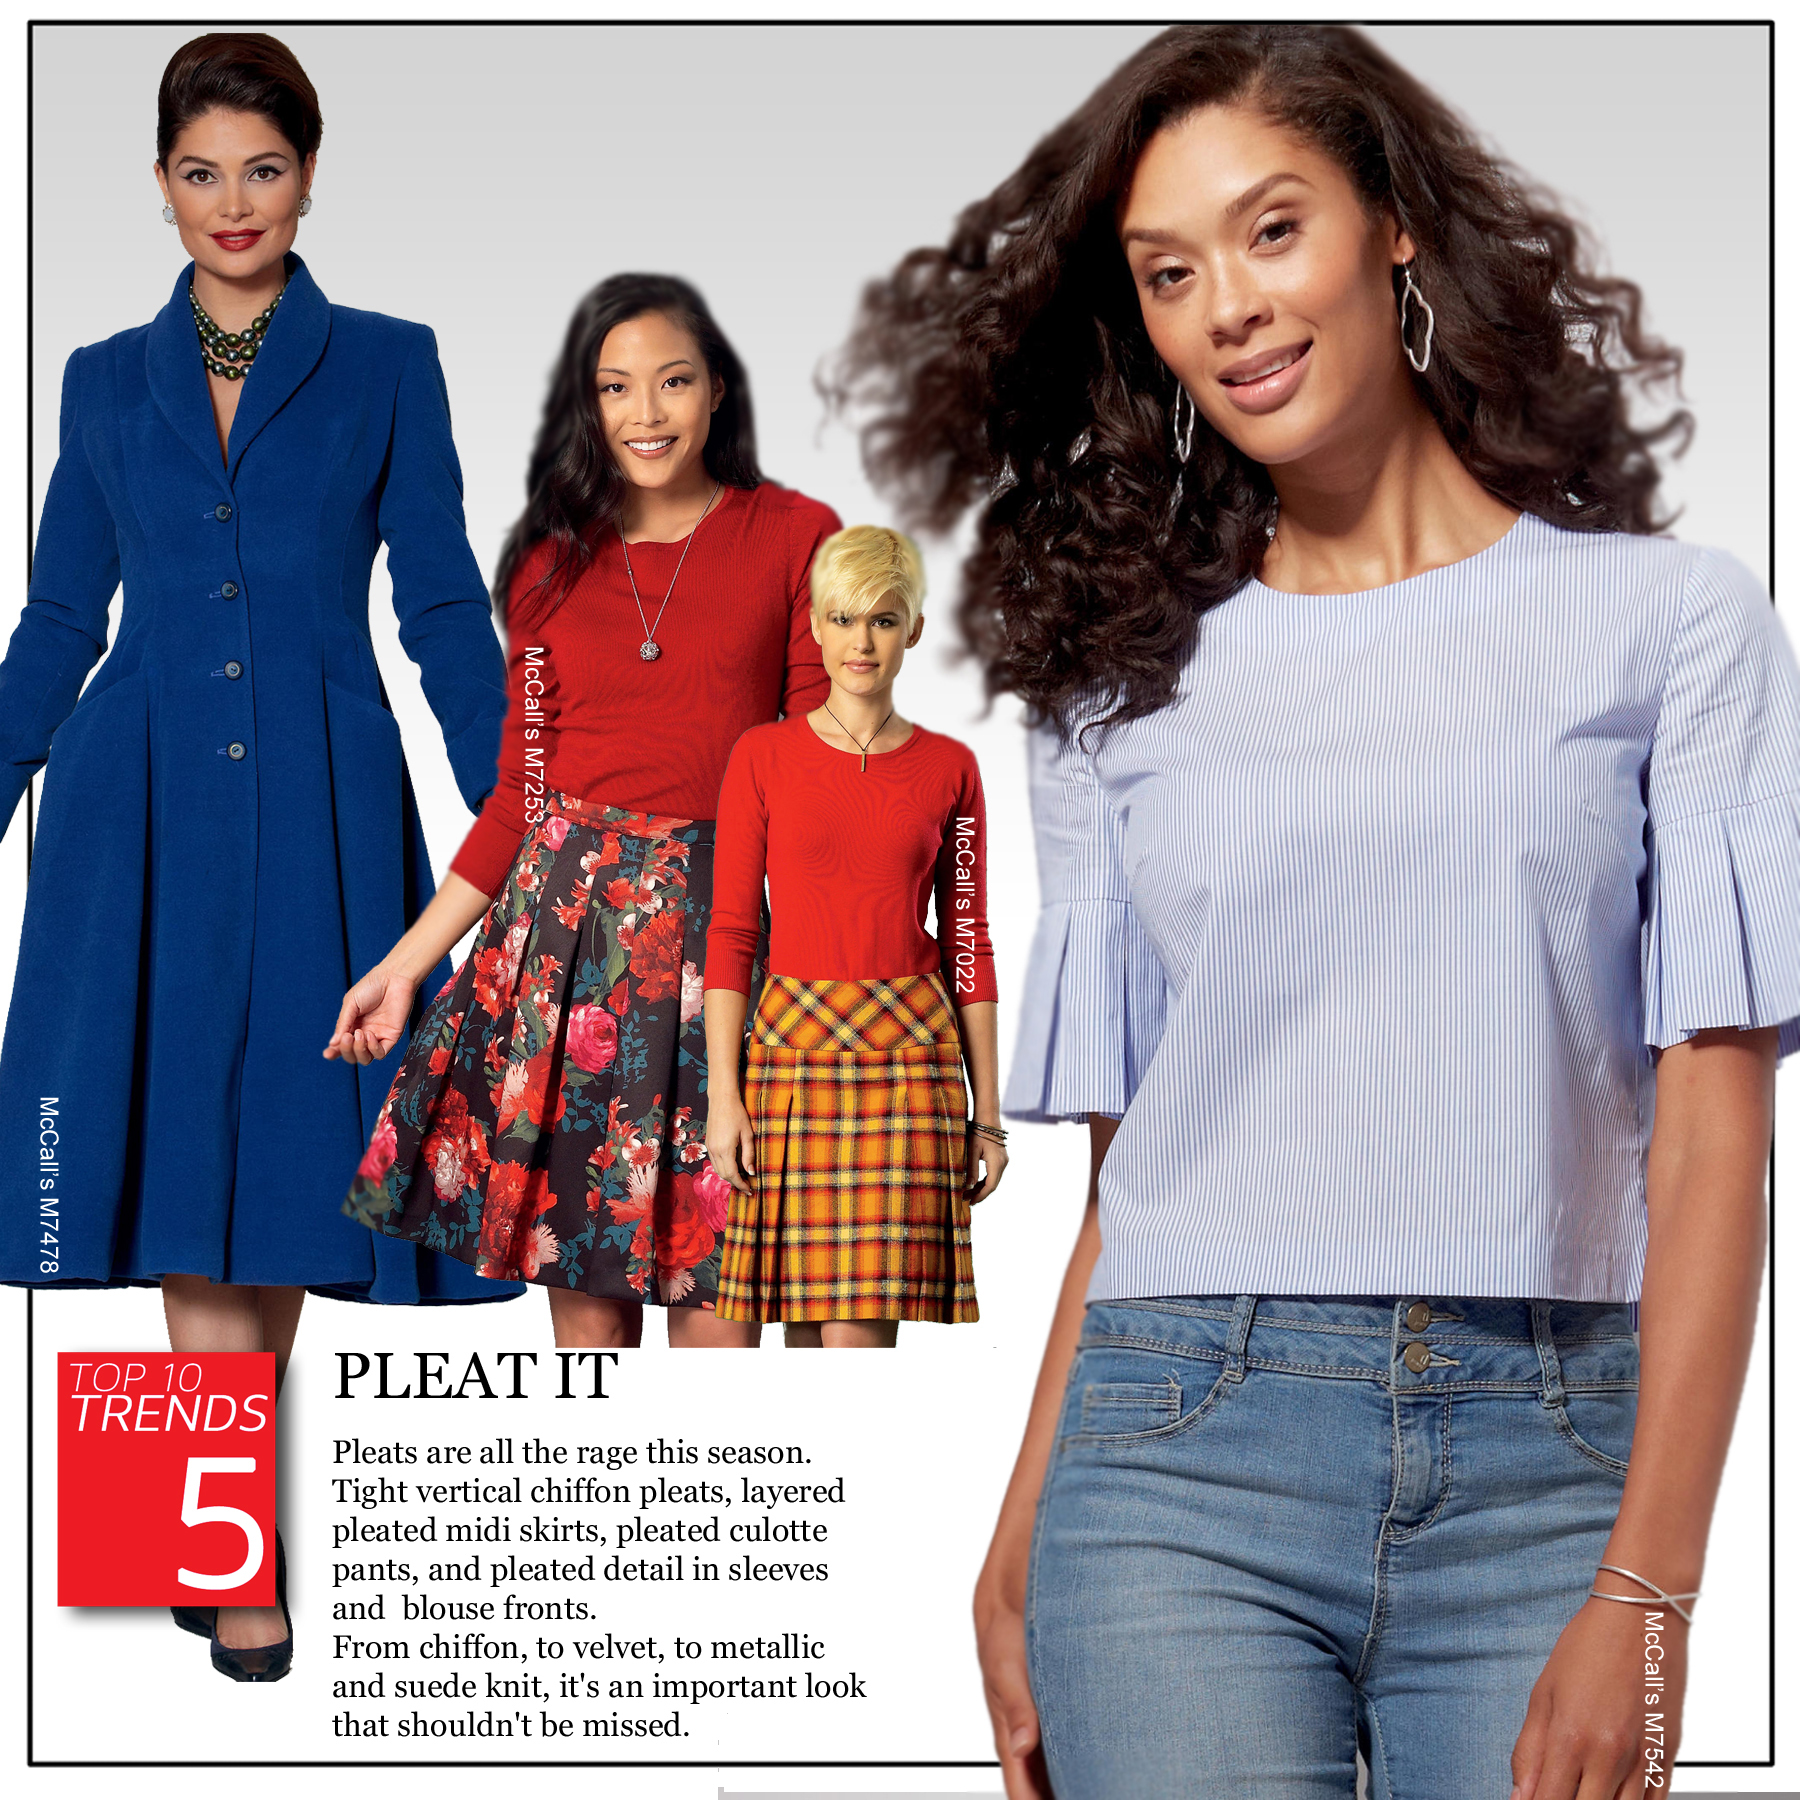 Trend 5 - Pleat It